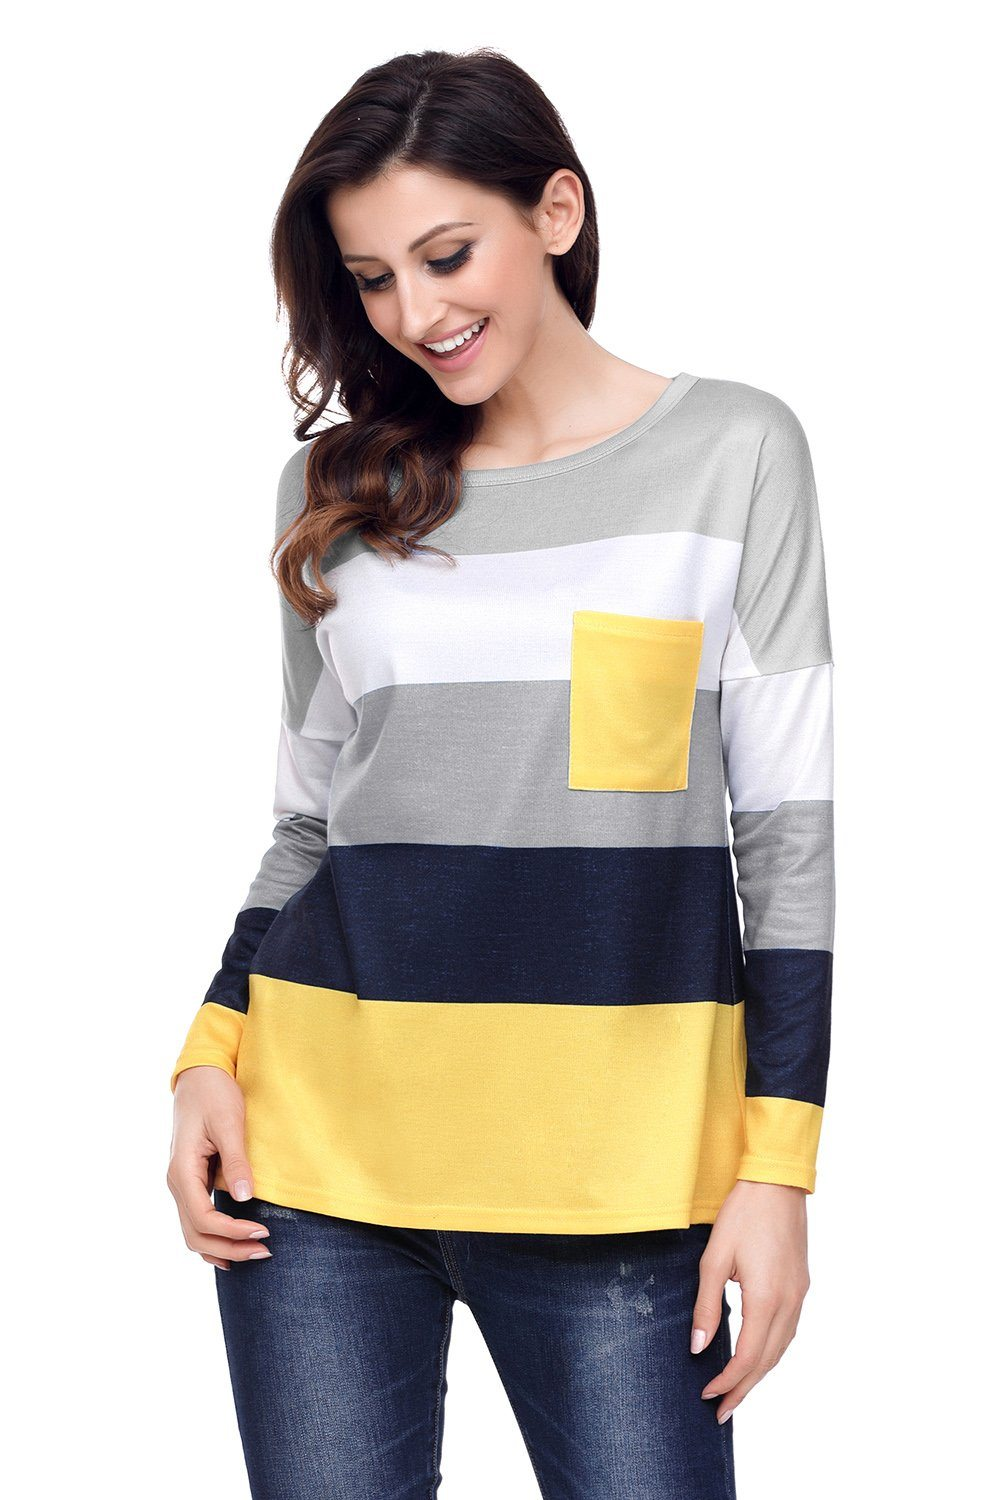 KaleaBoutique Bumble Bee Black Yellow Pullover Tunic Top - KaleaBoutique.com